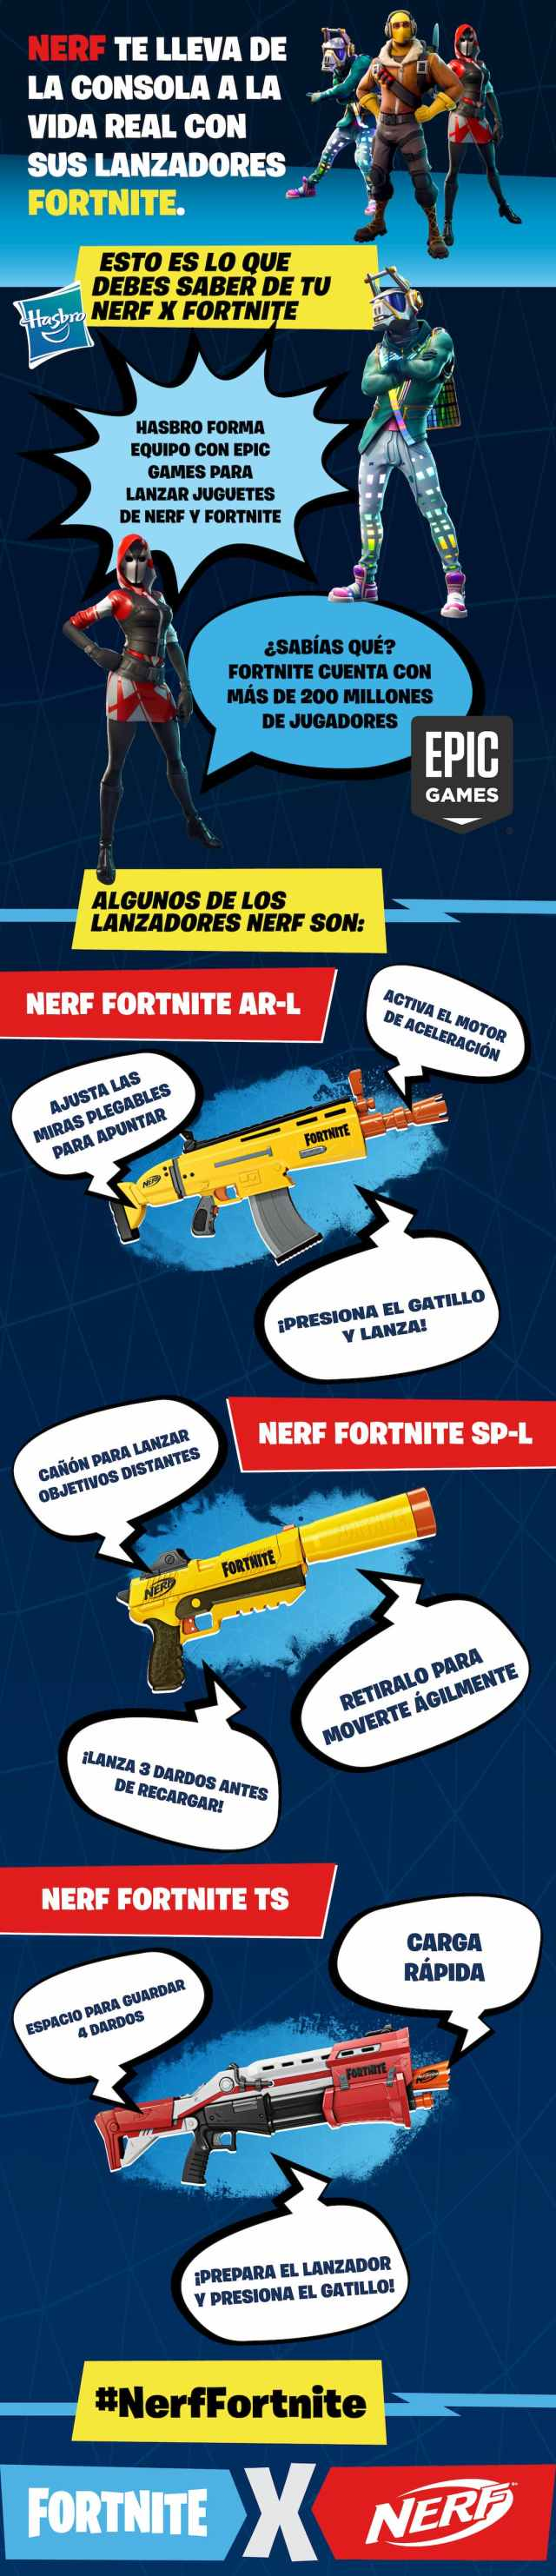 NerfFortnite